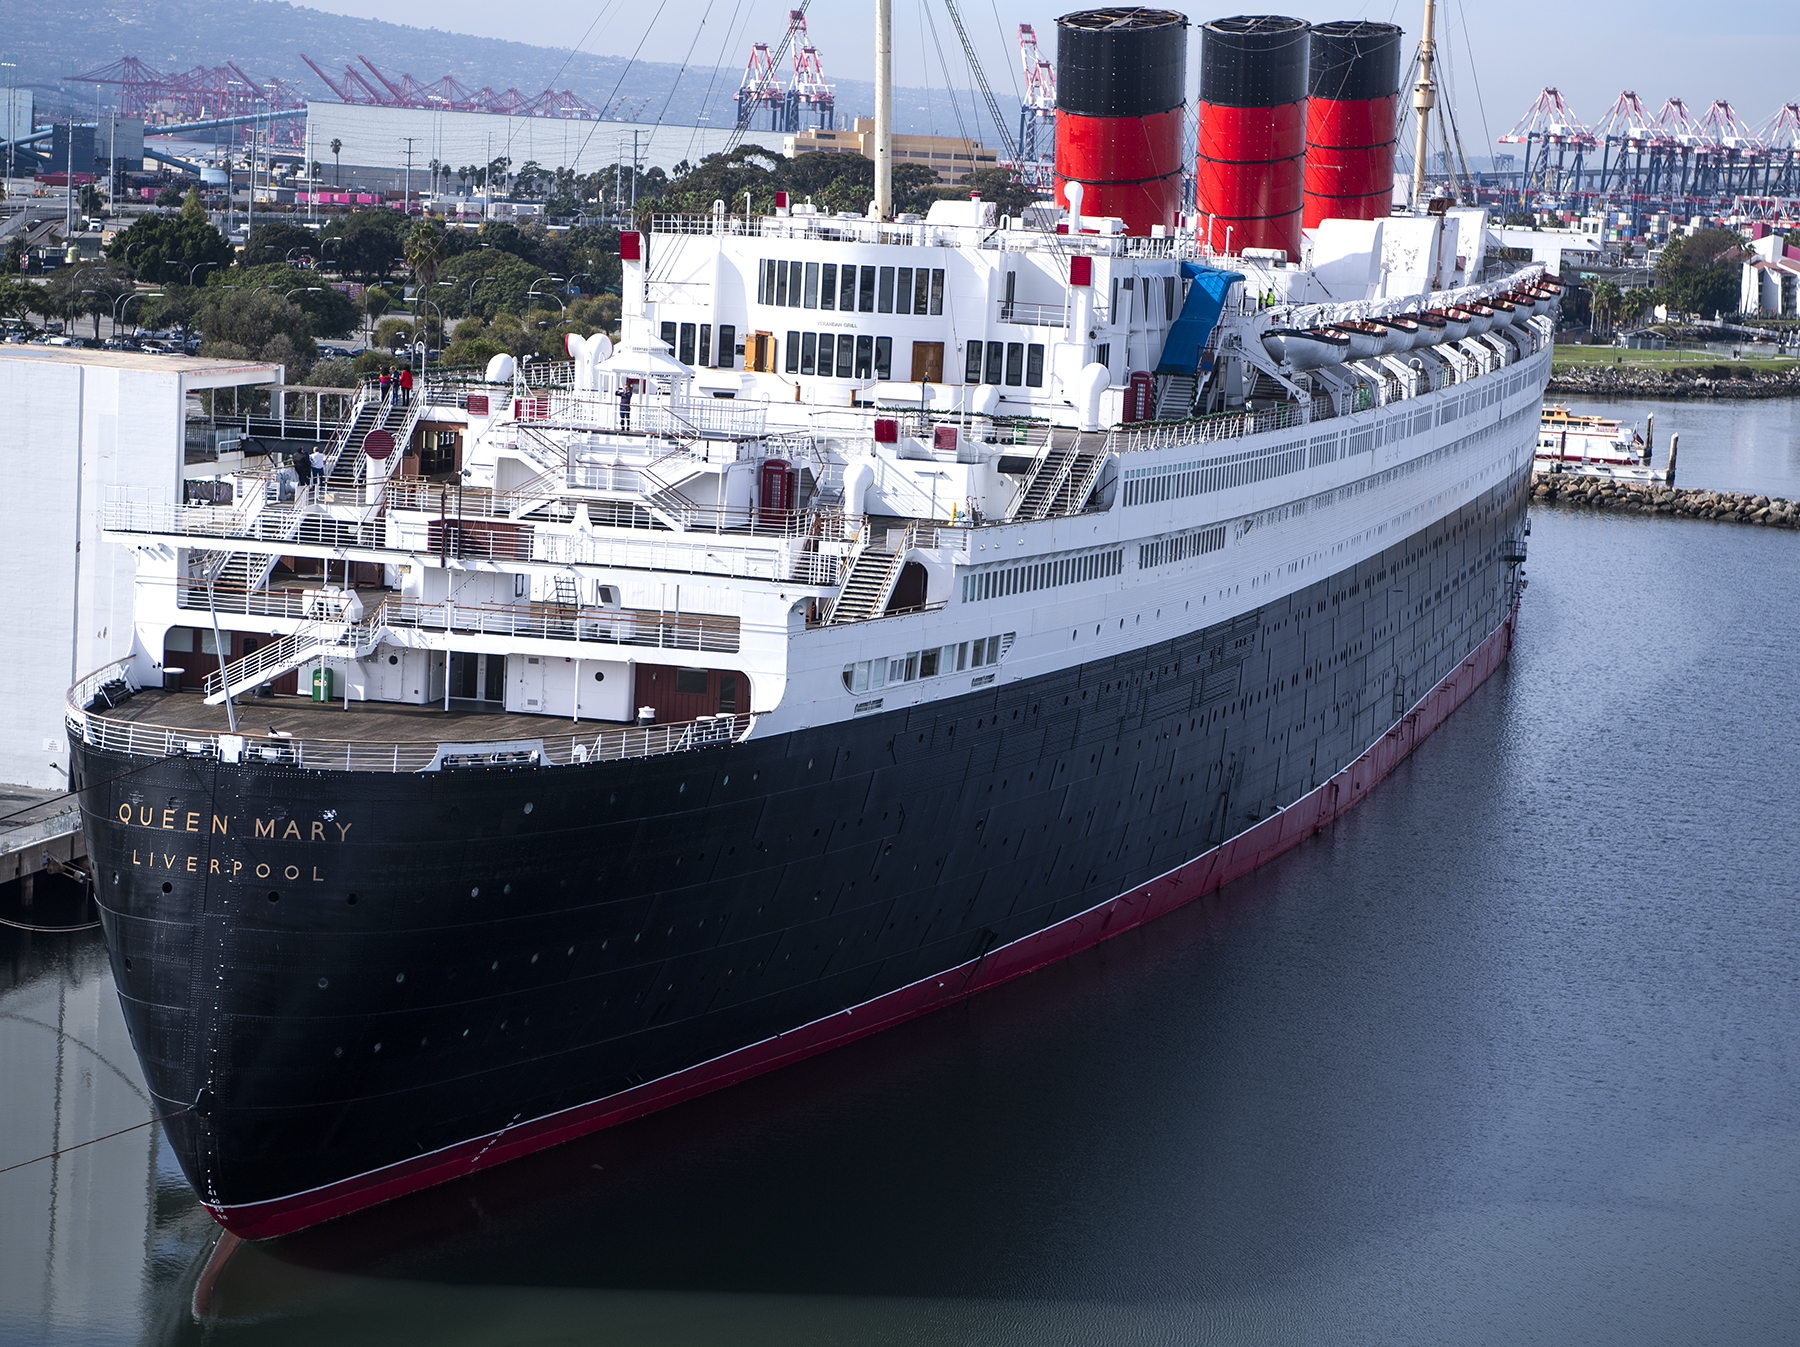 Queen Mary's future in limbo as operator's bankruptcy hearings are underway